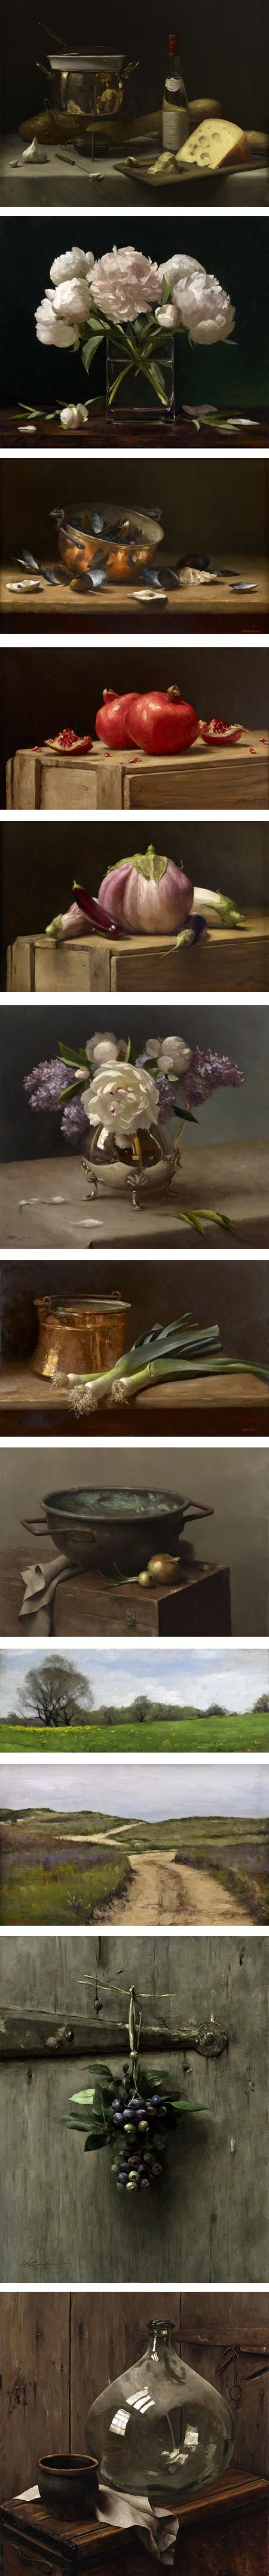 These still life compositions by Sarah Lamb are amazing.